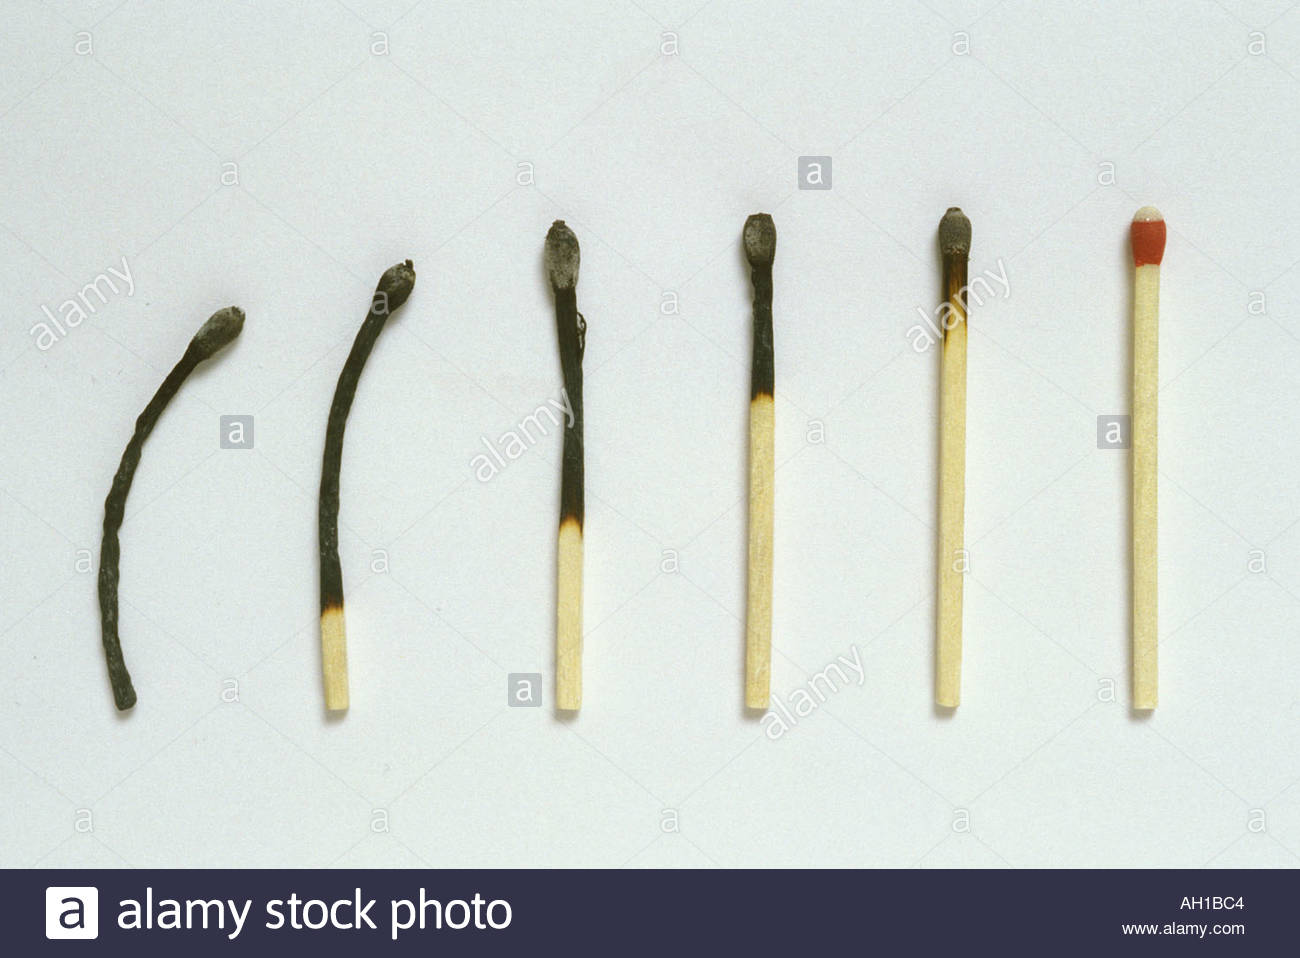 succession of matches from unused to charred - Stock Image